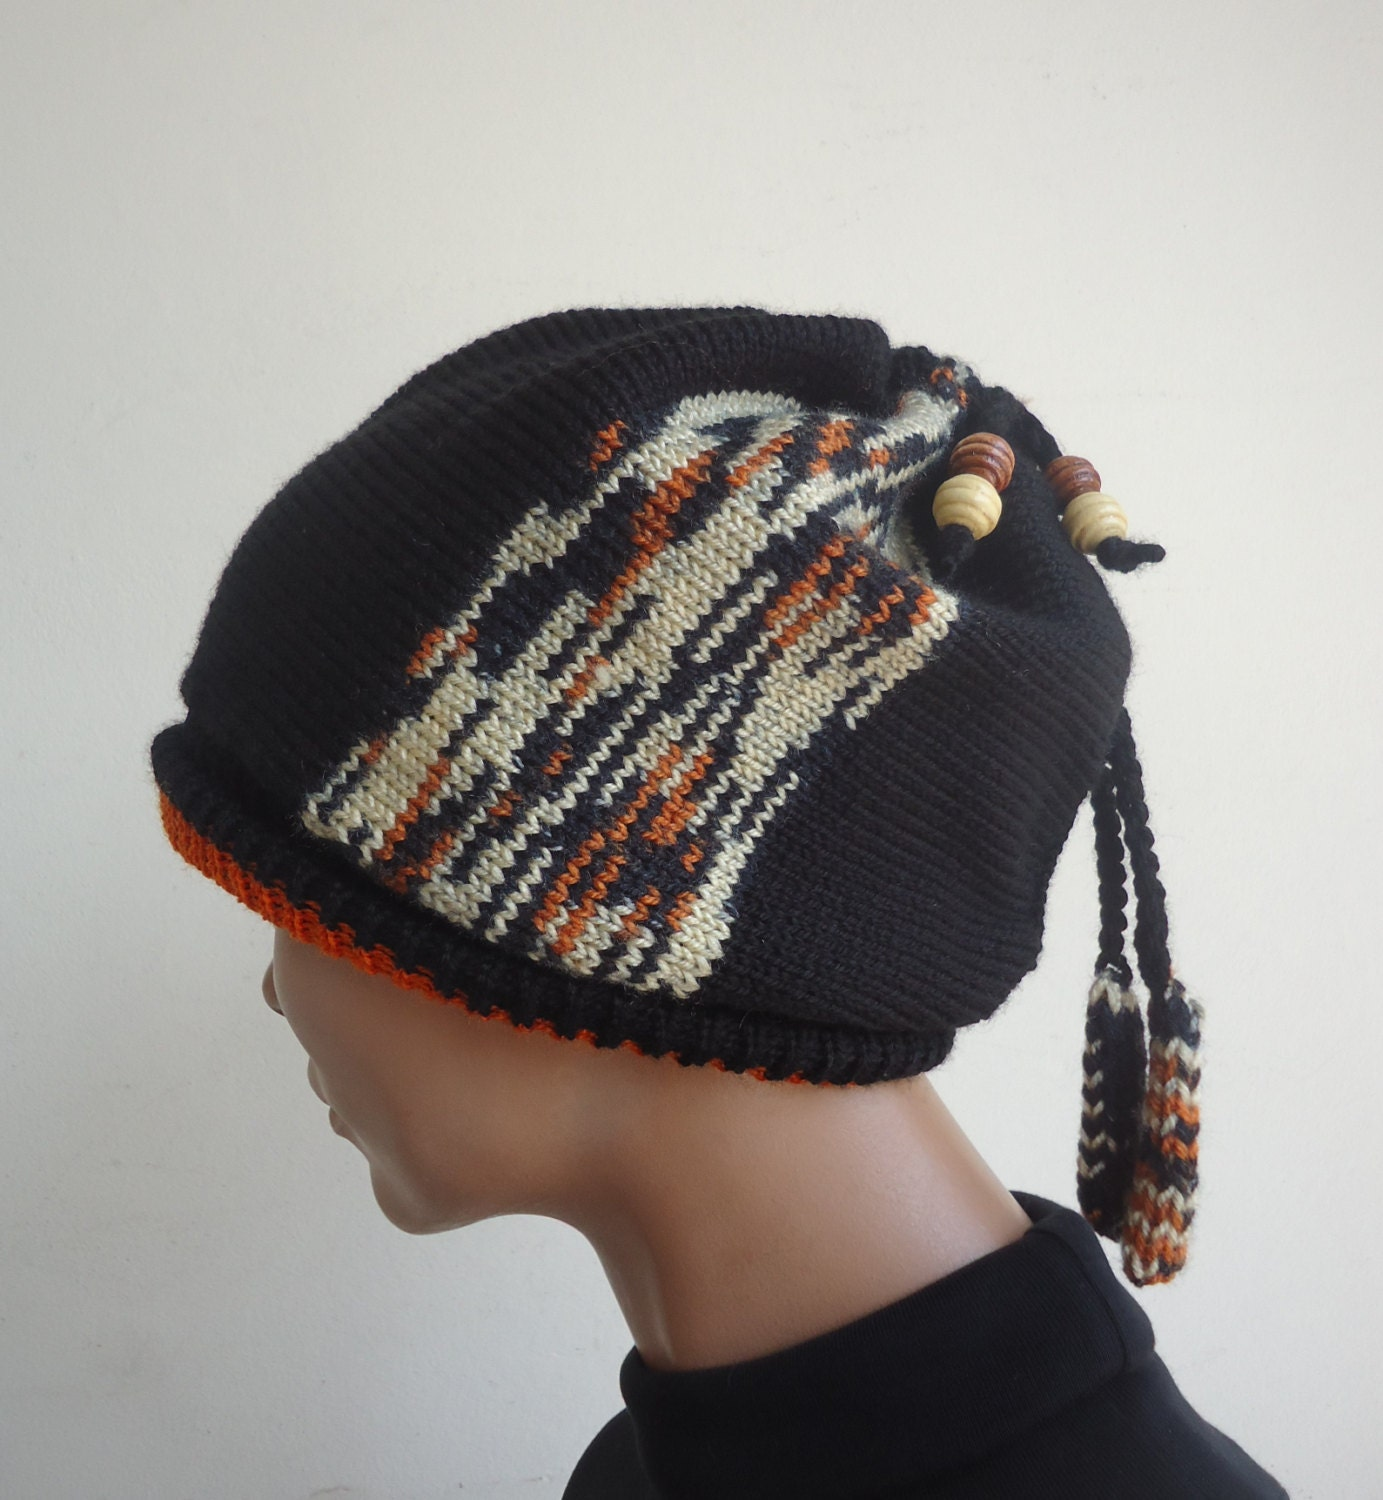 Knitting Hat For Women : Womens hat winter beanies knit knitted beanie